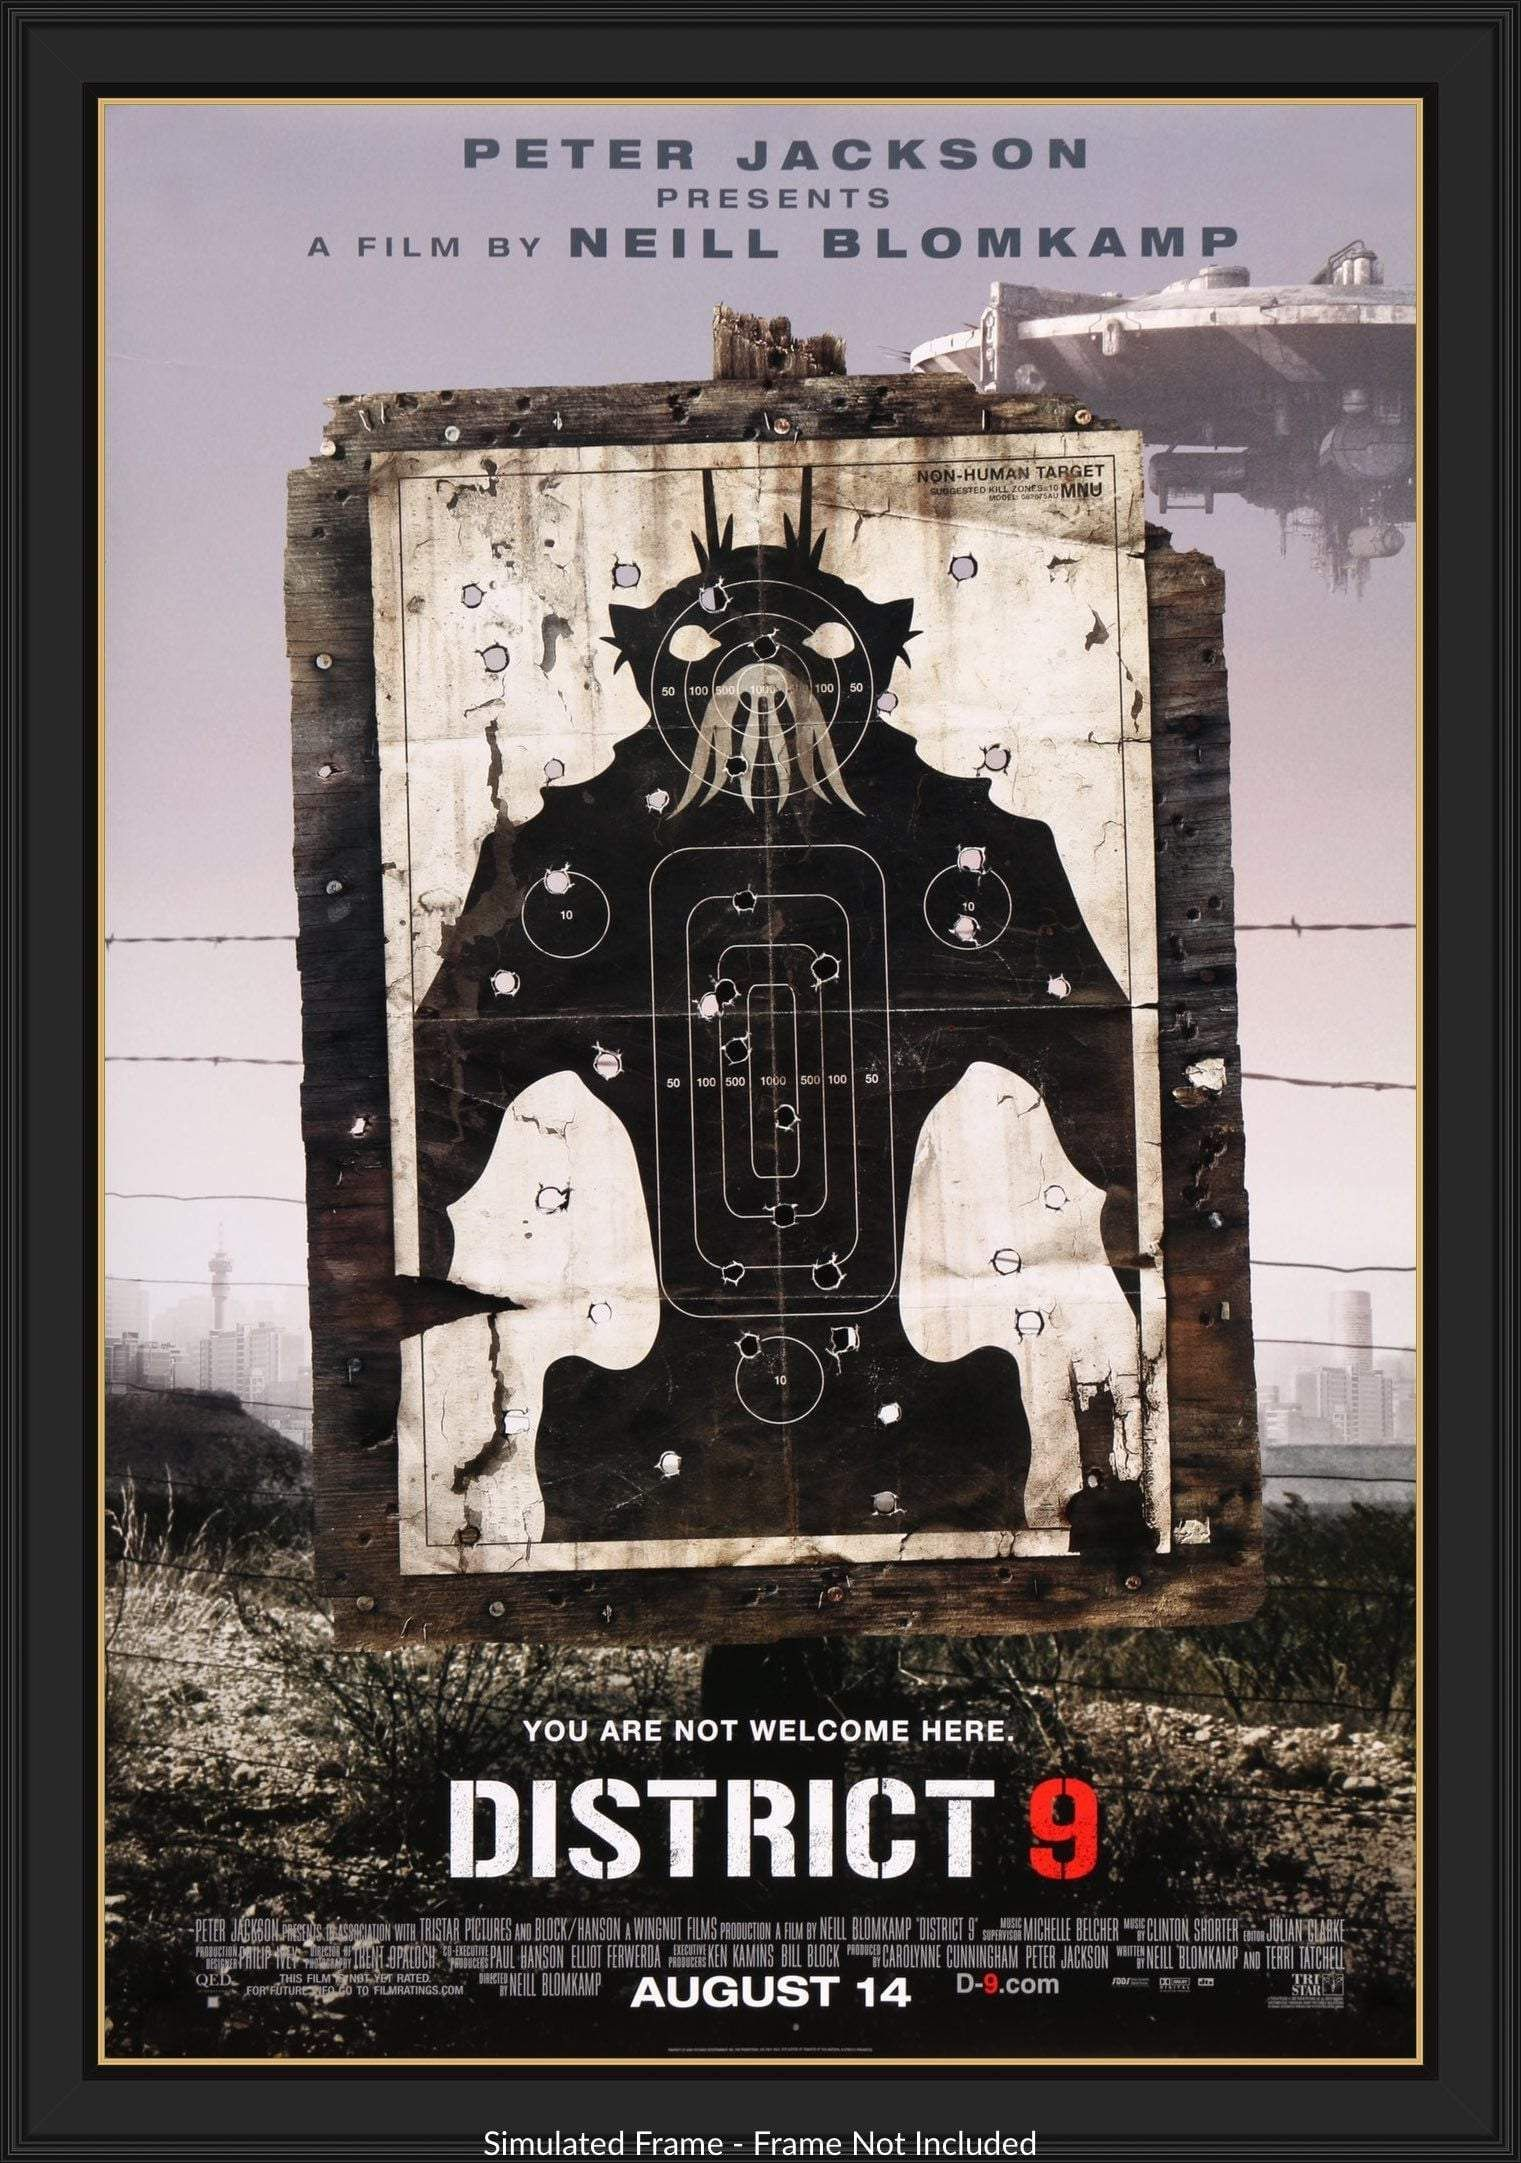 District 9 2009 In 2020 Movie Posters Movie Poster Art Neill Blomkamp